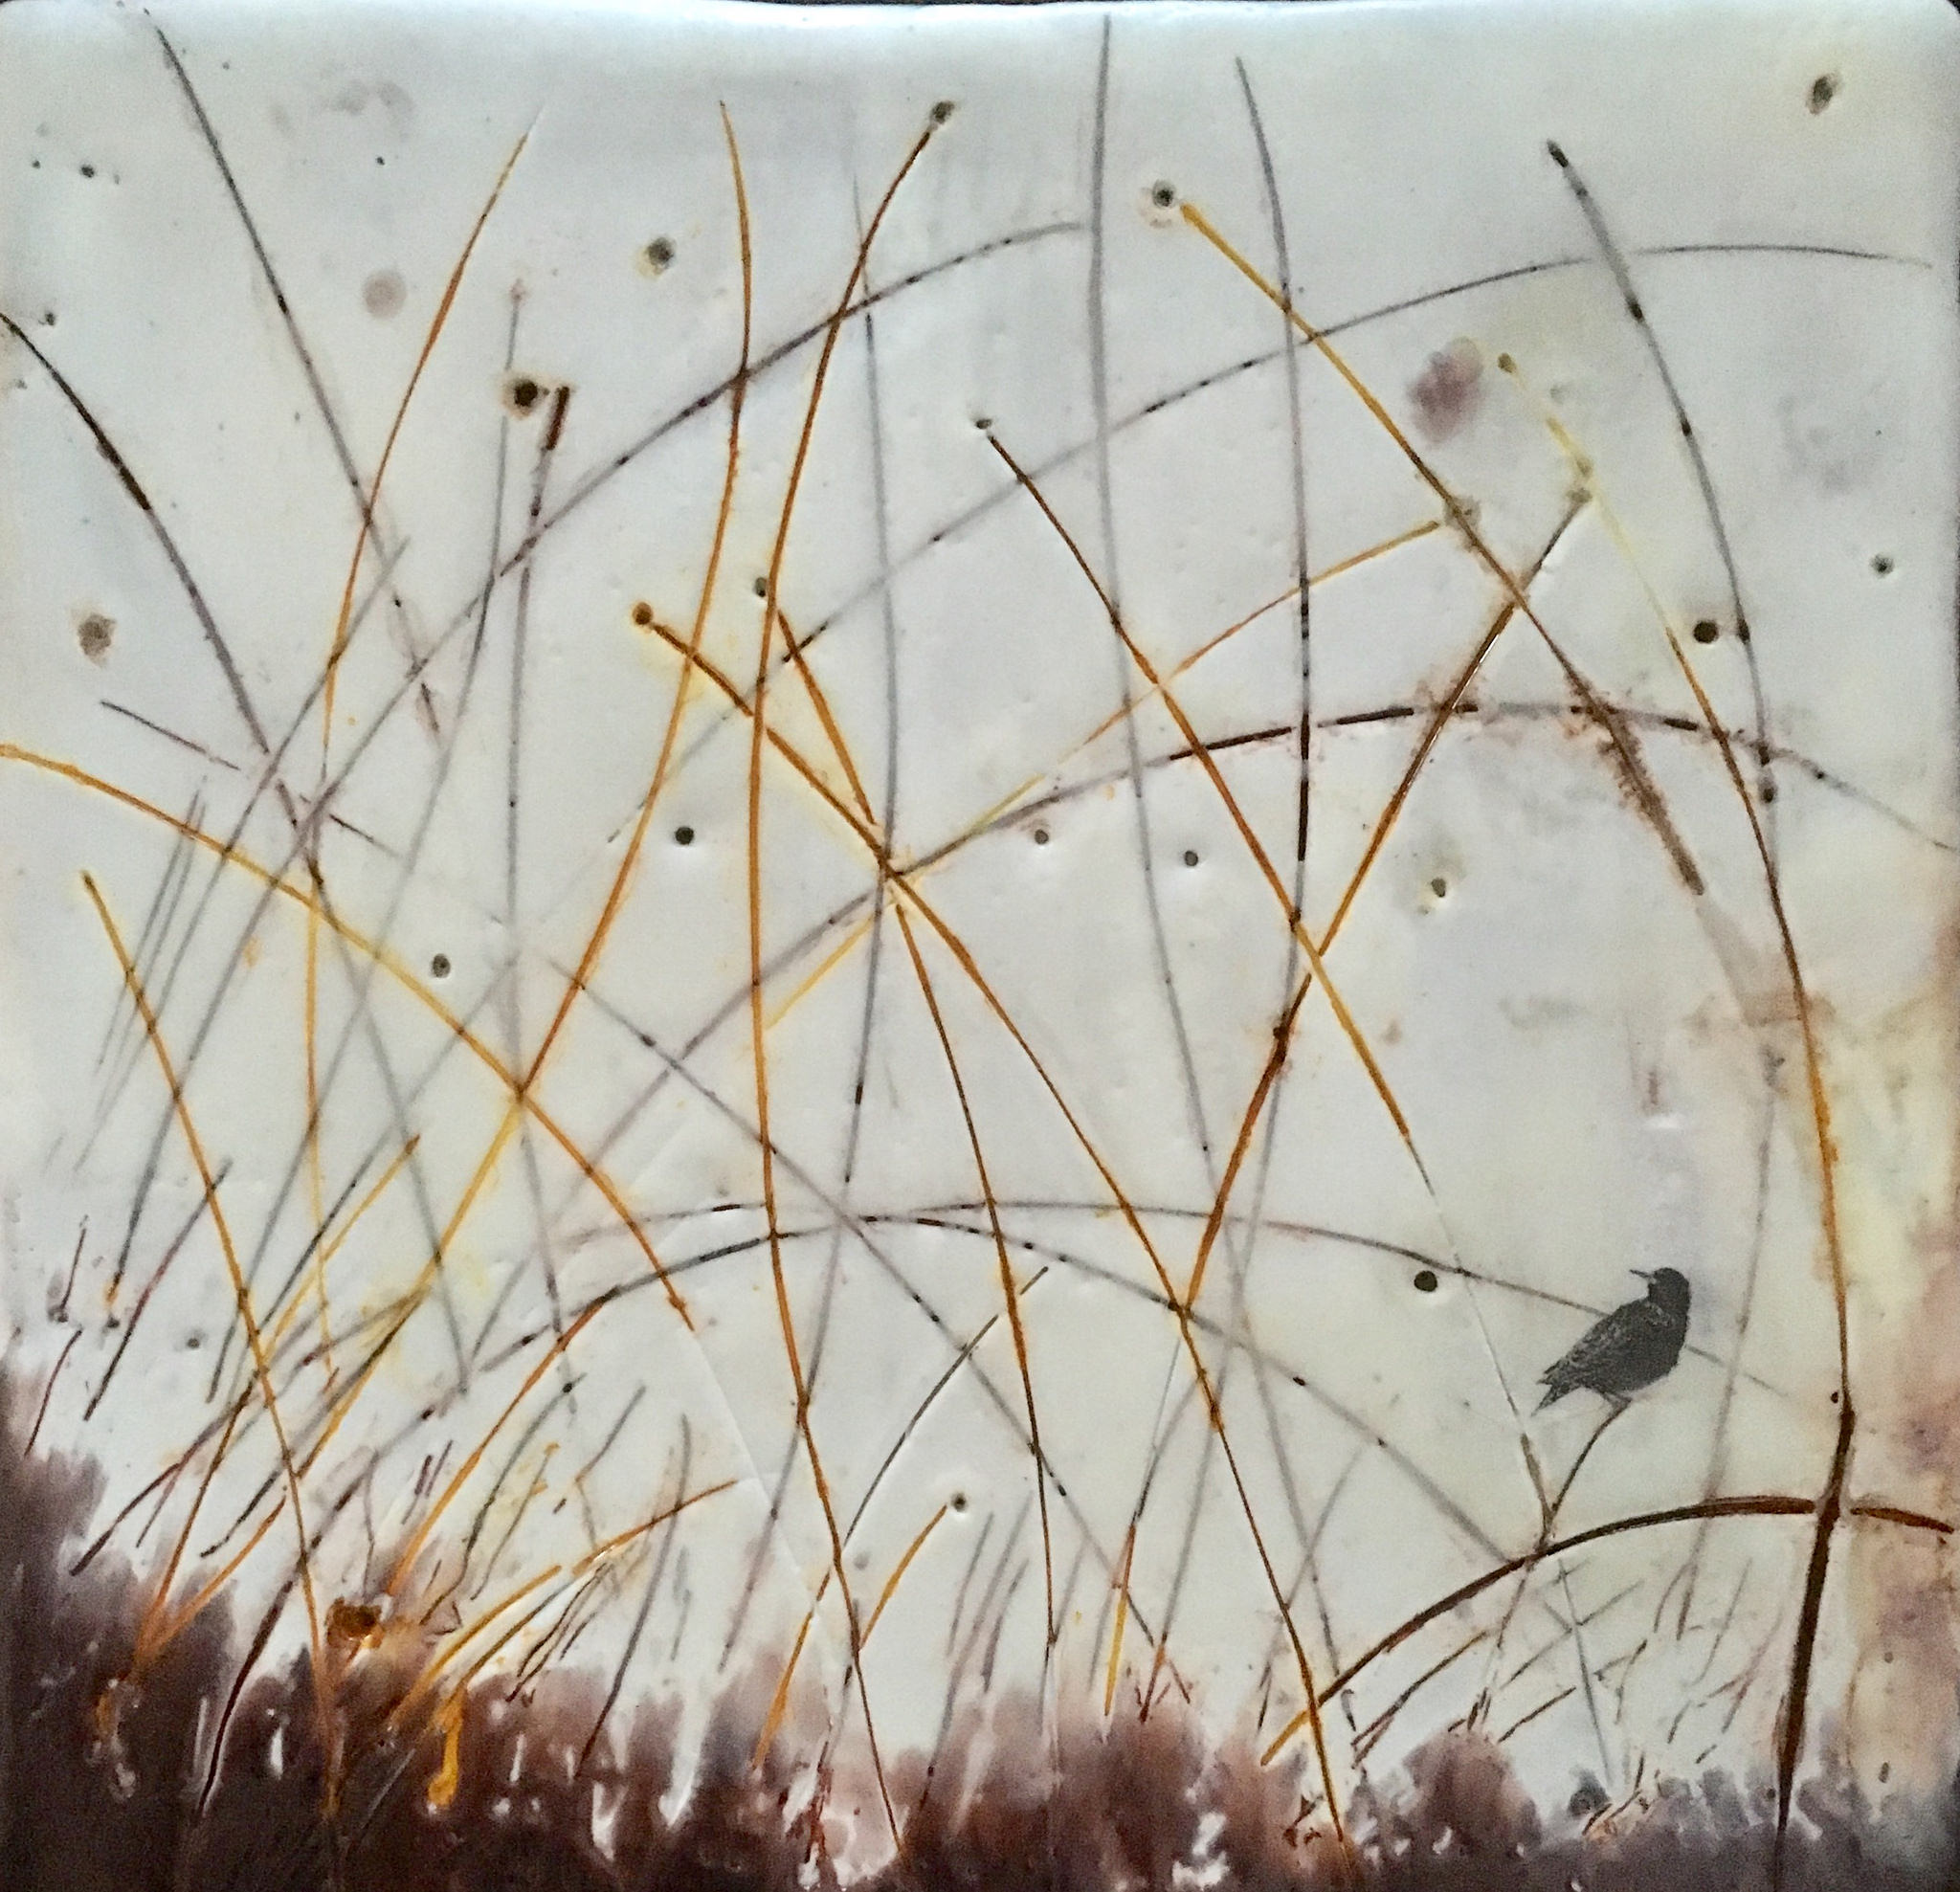 """""""Dreaming of Starlings III""""   6x6"""" framed  encaustic mixed media on board  SOLD  2017"""